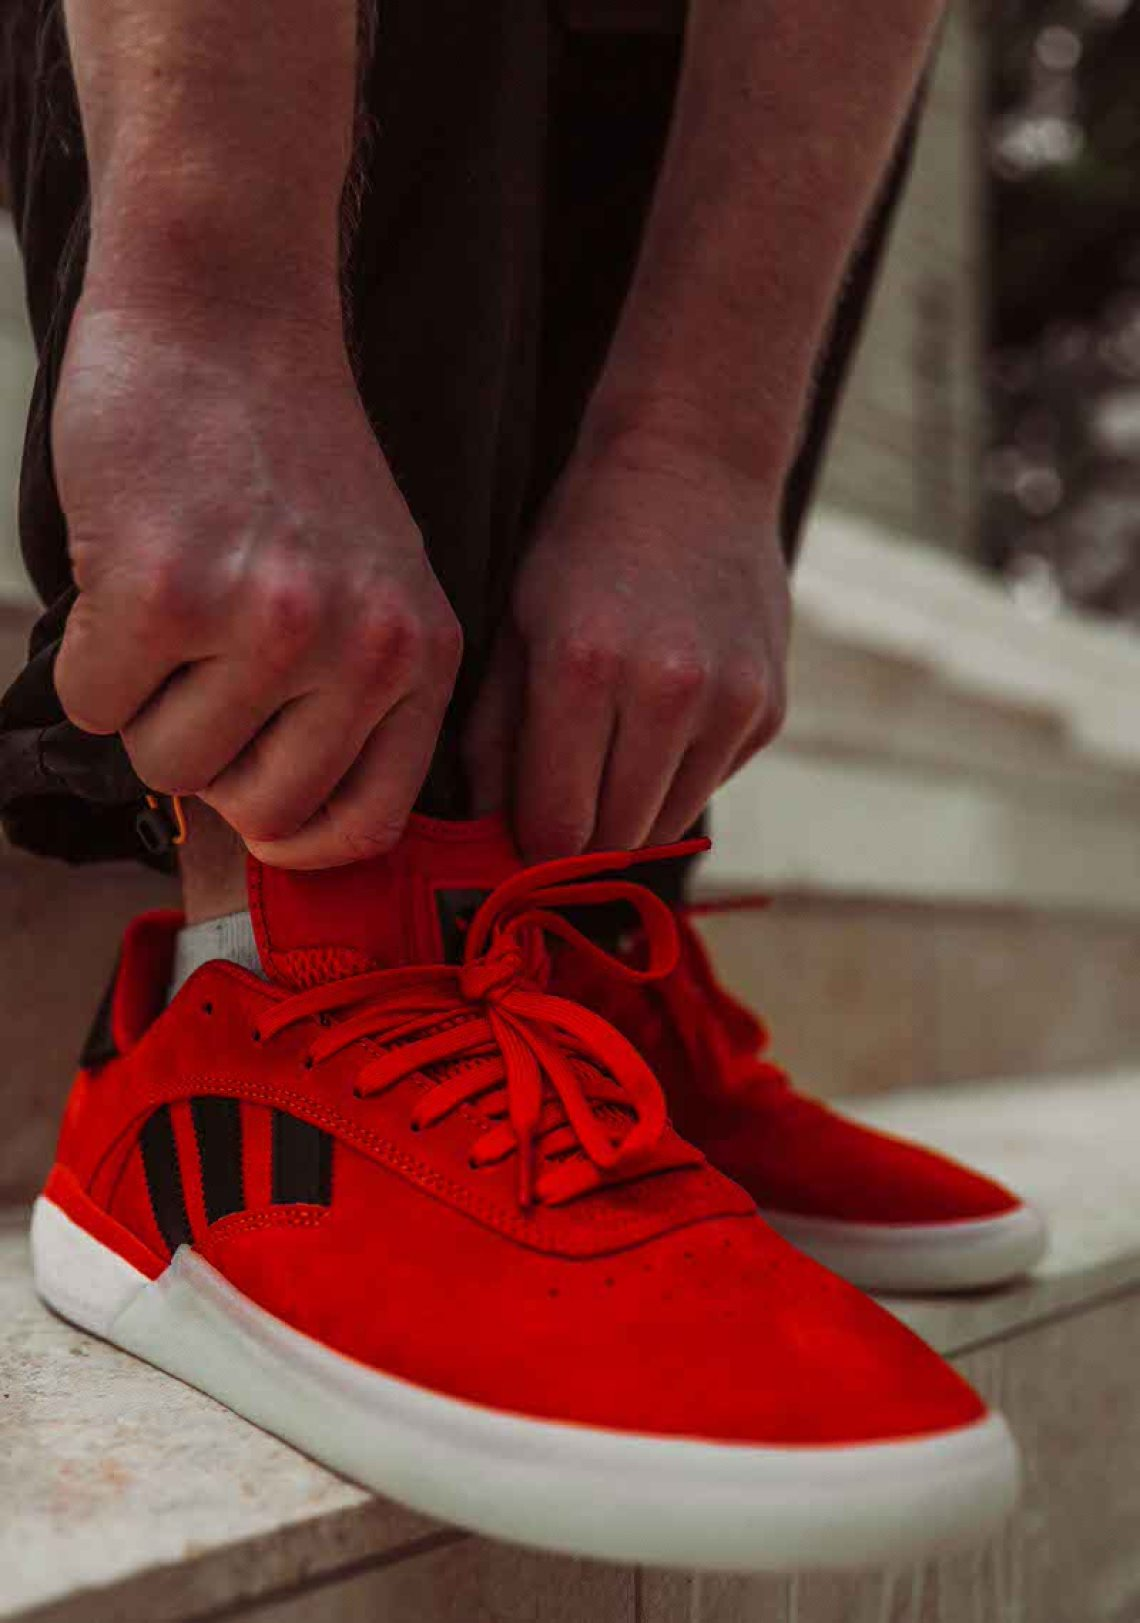 new arrival 6bd4d 6f890 Pick up your pair of the Adidas Skateboarding 3ST.004 here.